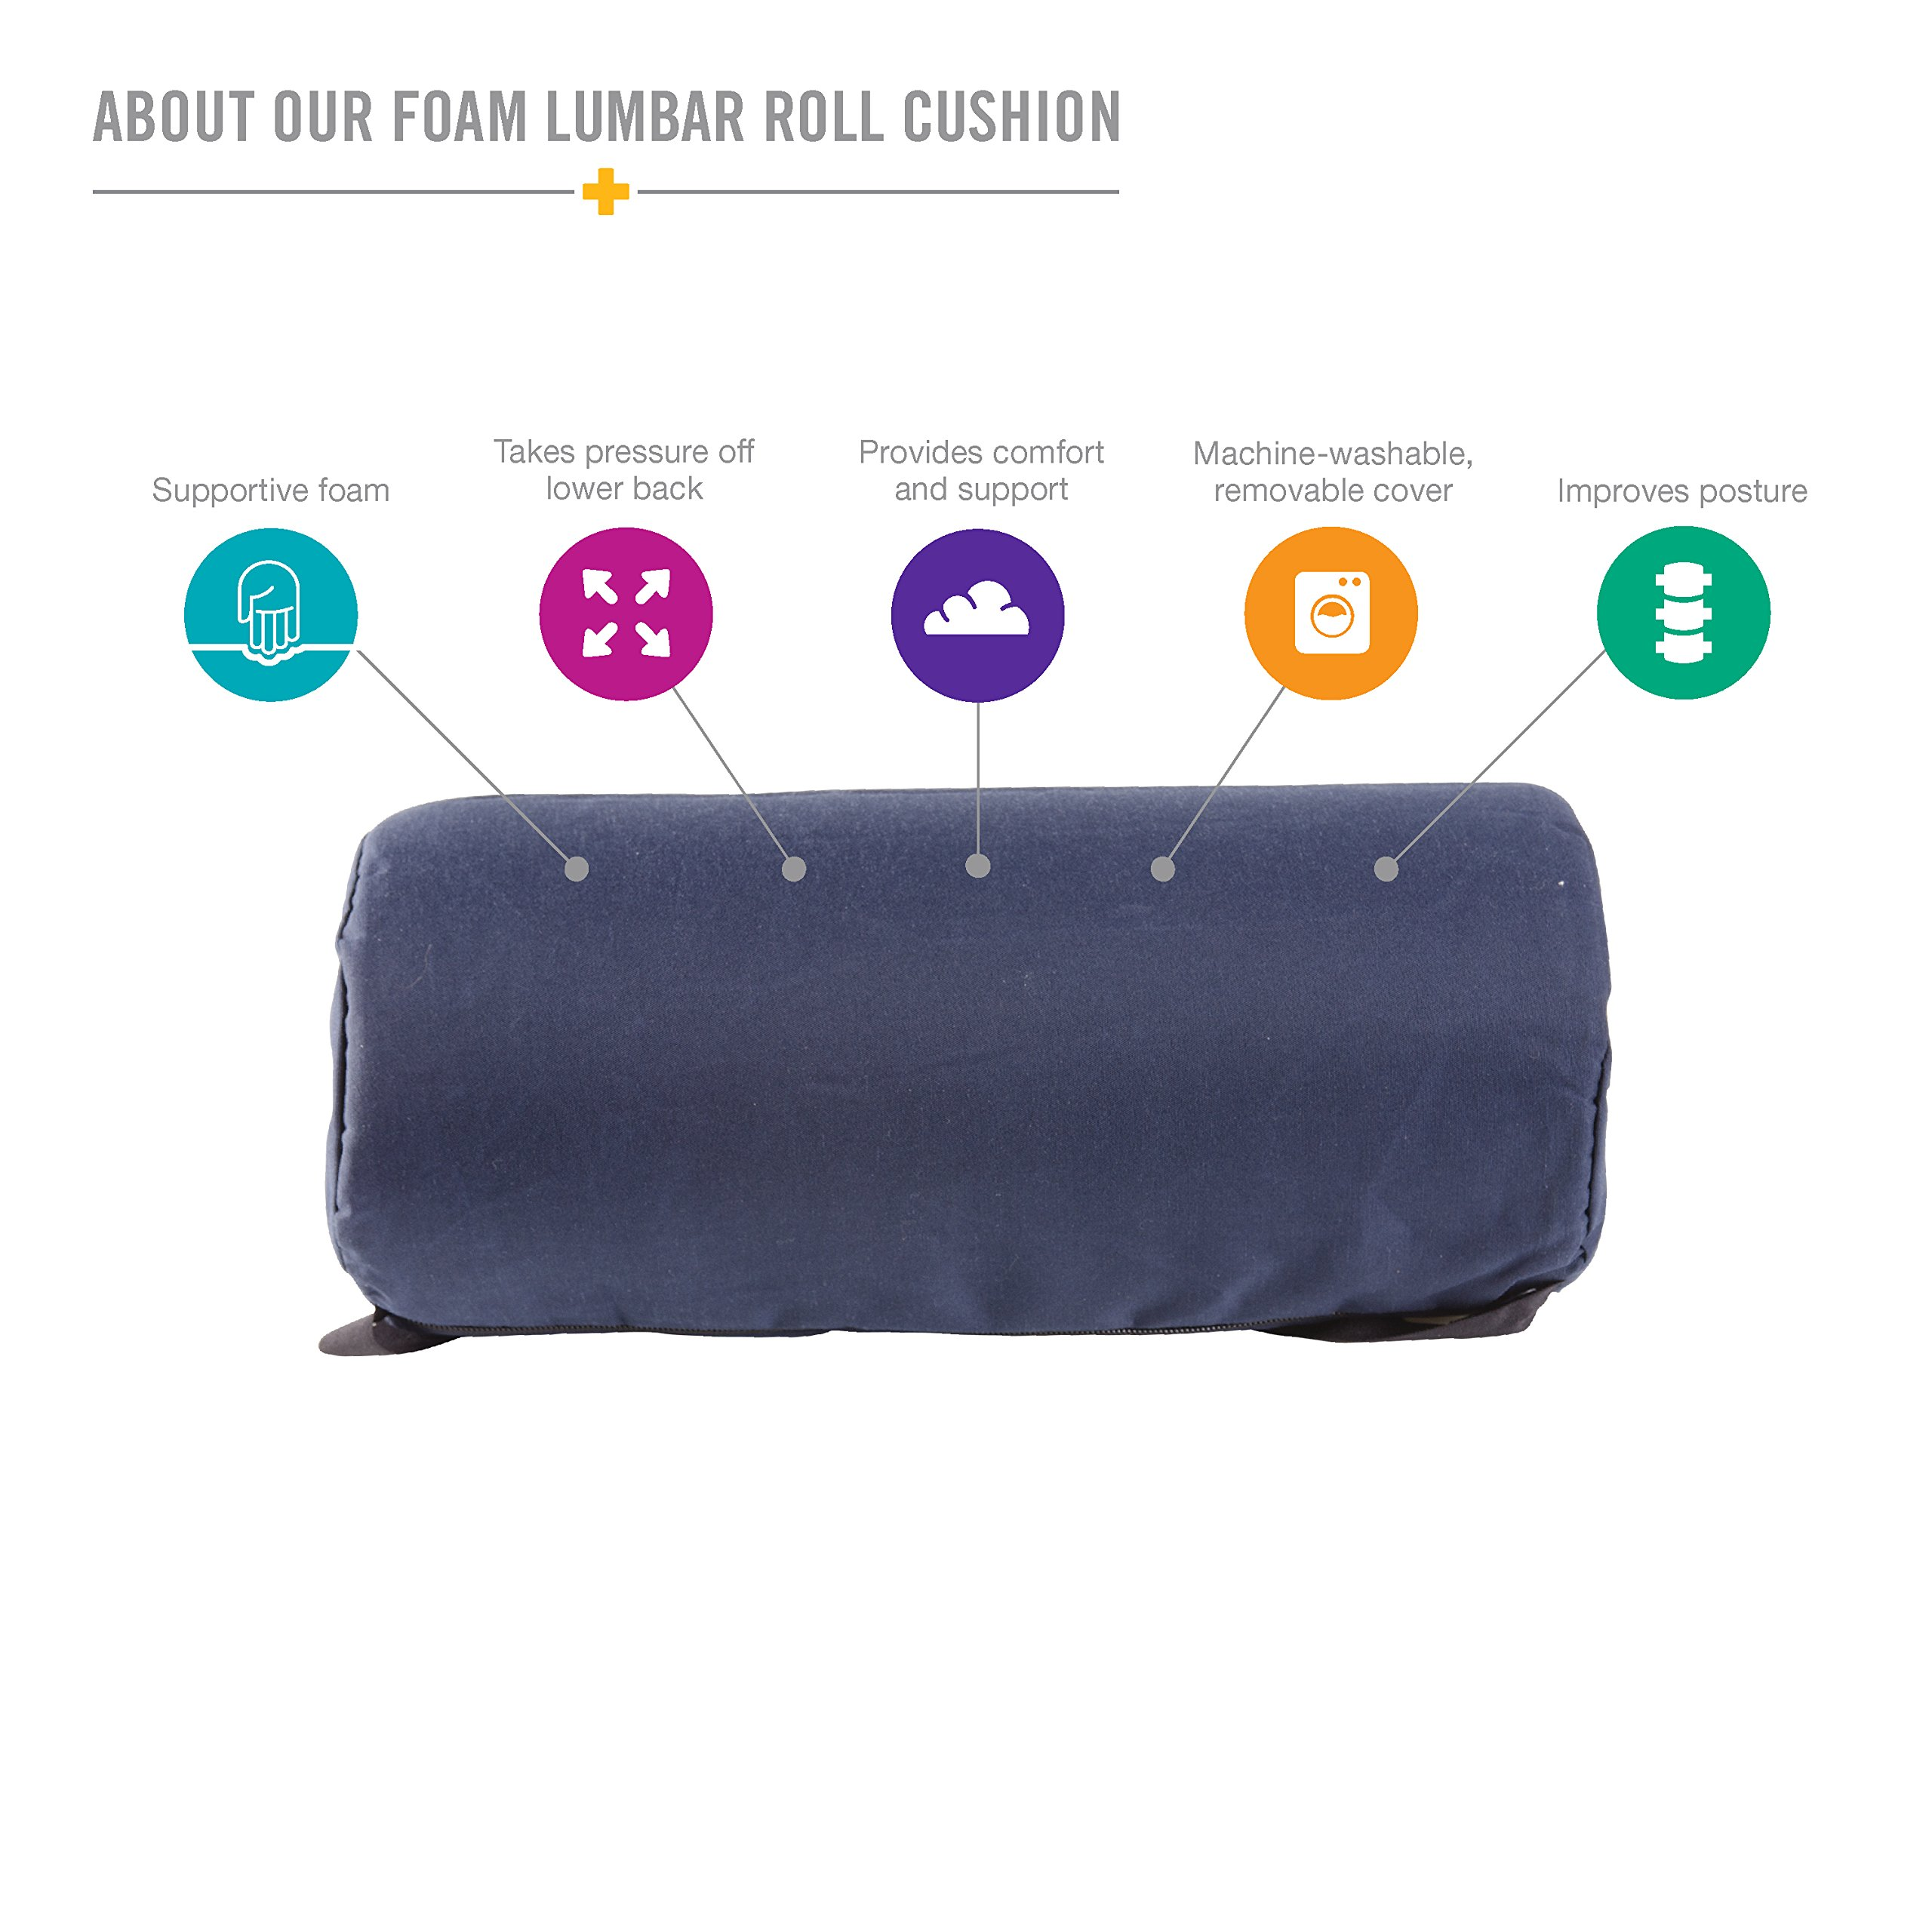 DMI Lumbar Roll Back Support Cushion Pillow - Foam Lumbar Cushion with Cover and Strap, Navy by Duro-Med (Image #2)